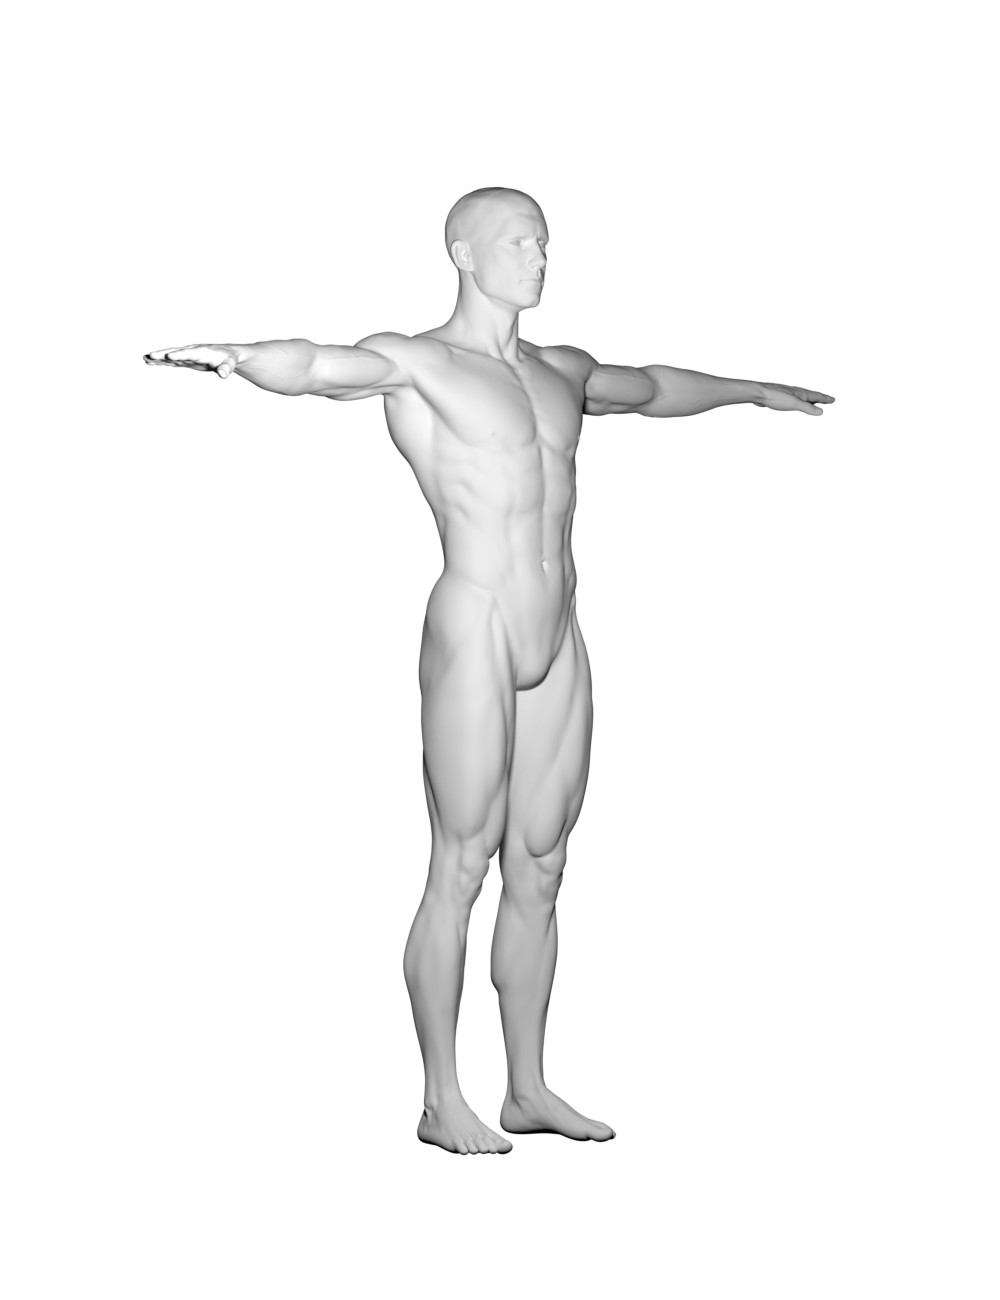 William Soares - Male Anatomy references for Artists PDF is